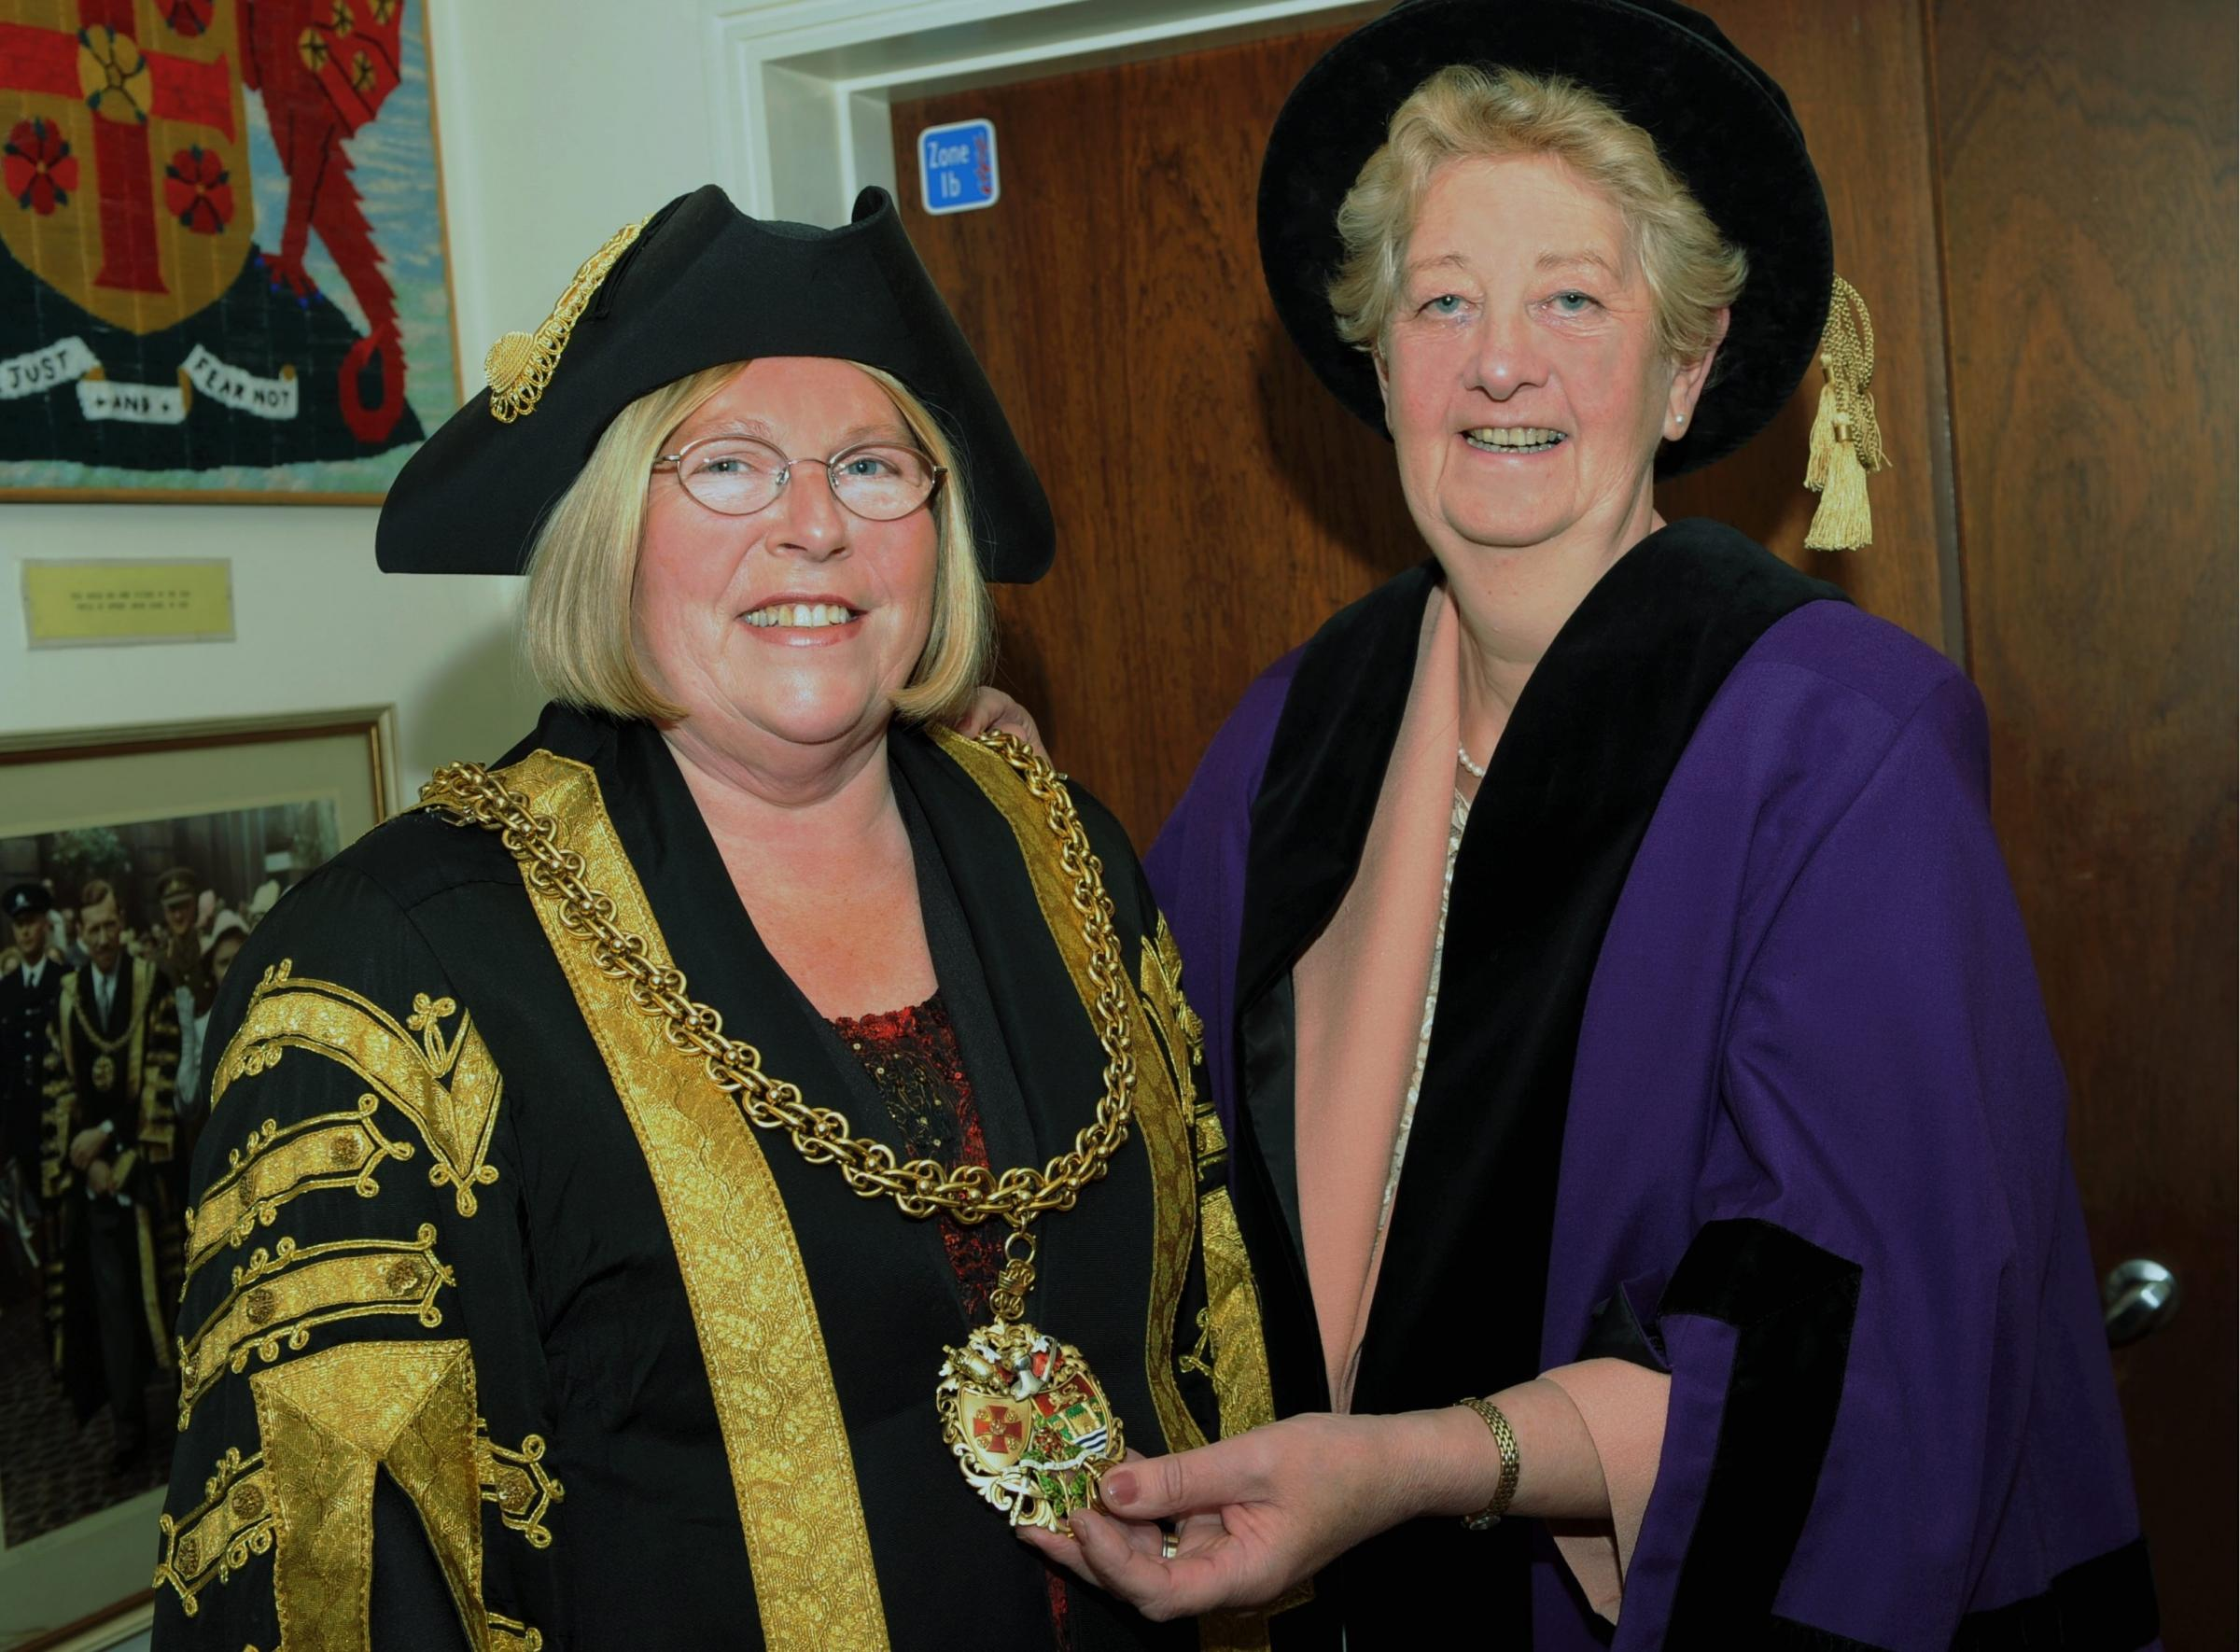 FRIENDSHIP: Former Mayor Elizabeth Mallinson (right) hands over her chain to Jacquelyne Geddes in 2008